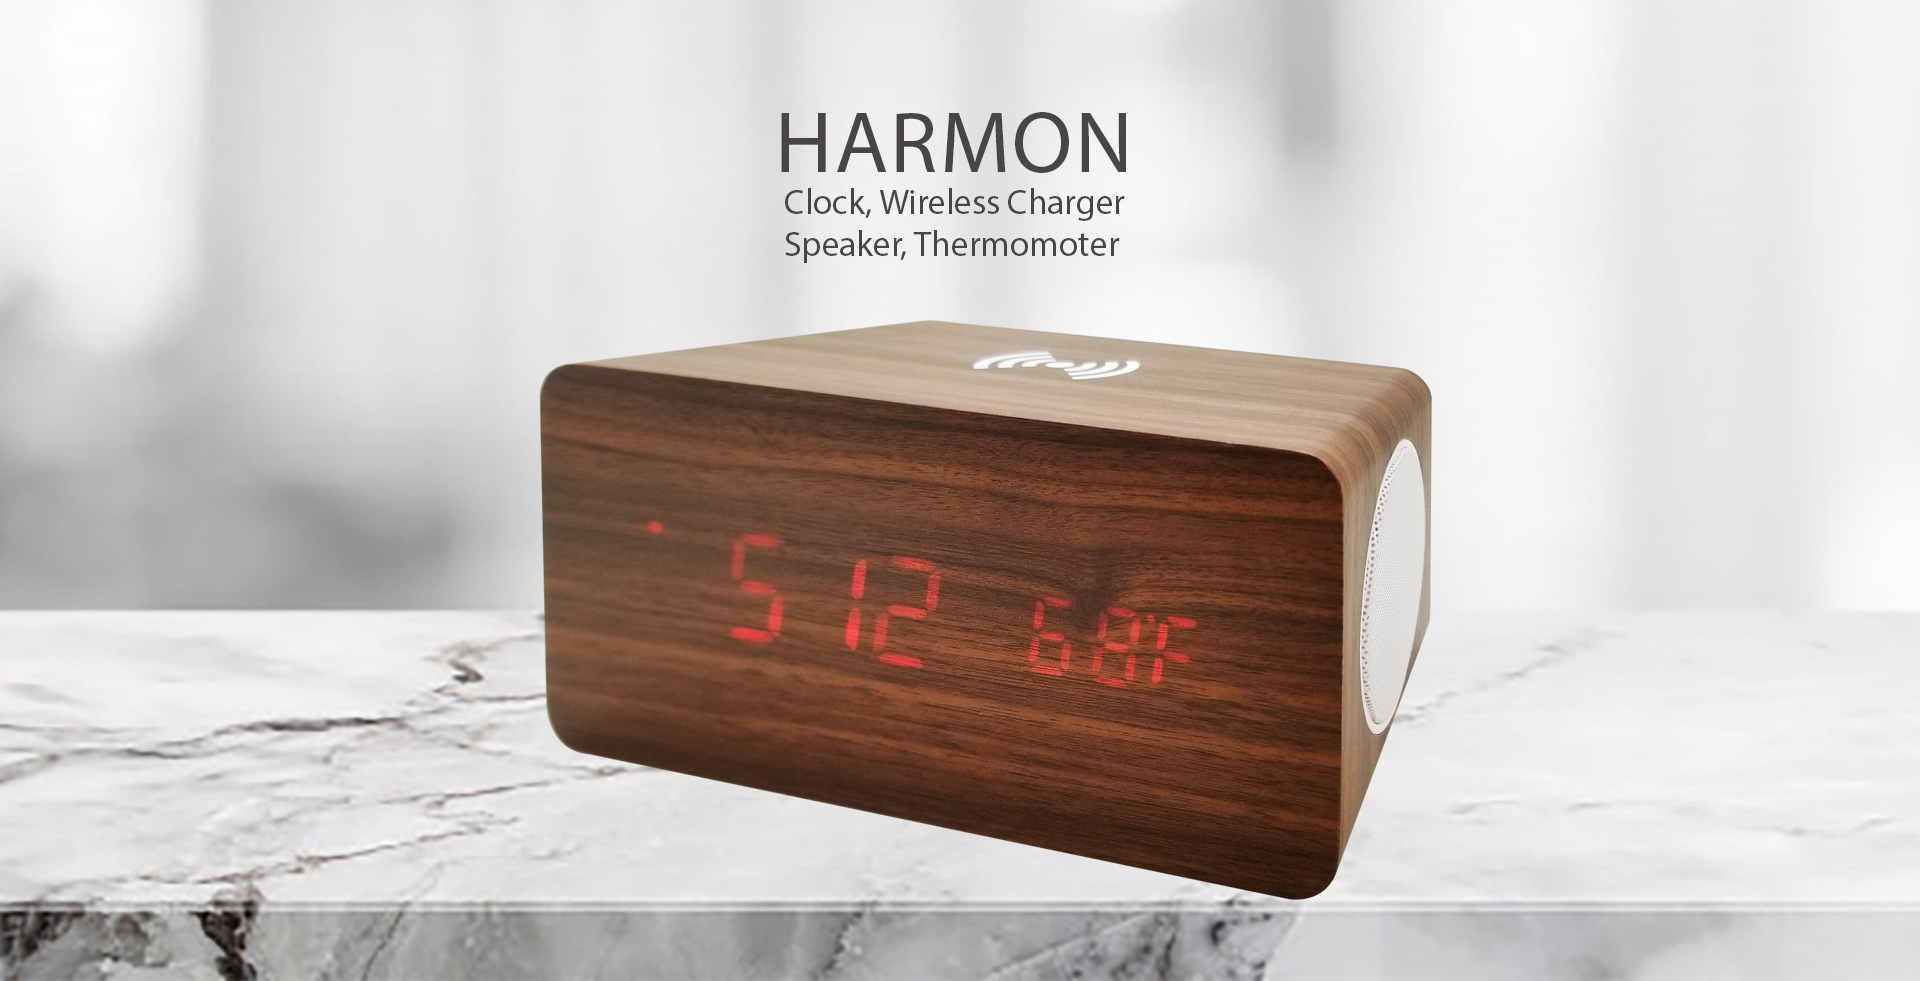 4-in-1 Clock, wireless charger, speaker, thermometer. A convenient clock for your home or office.